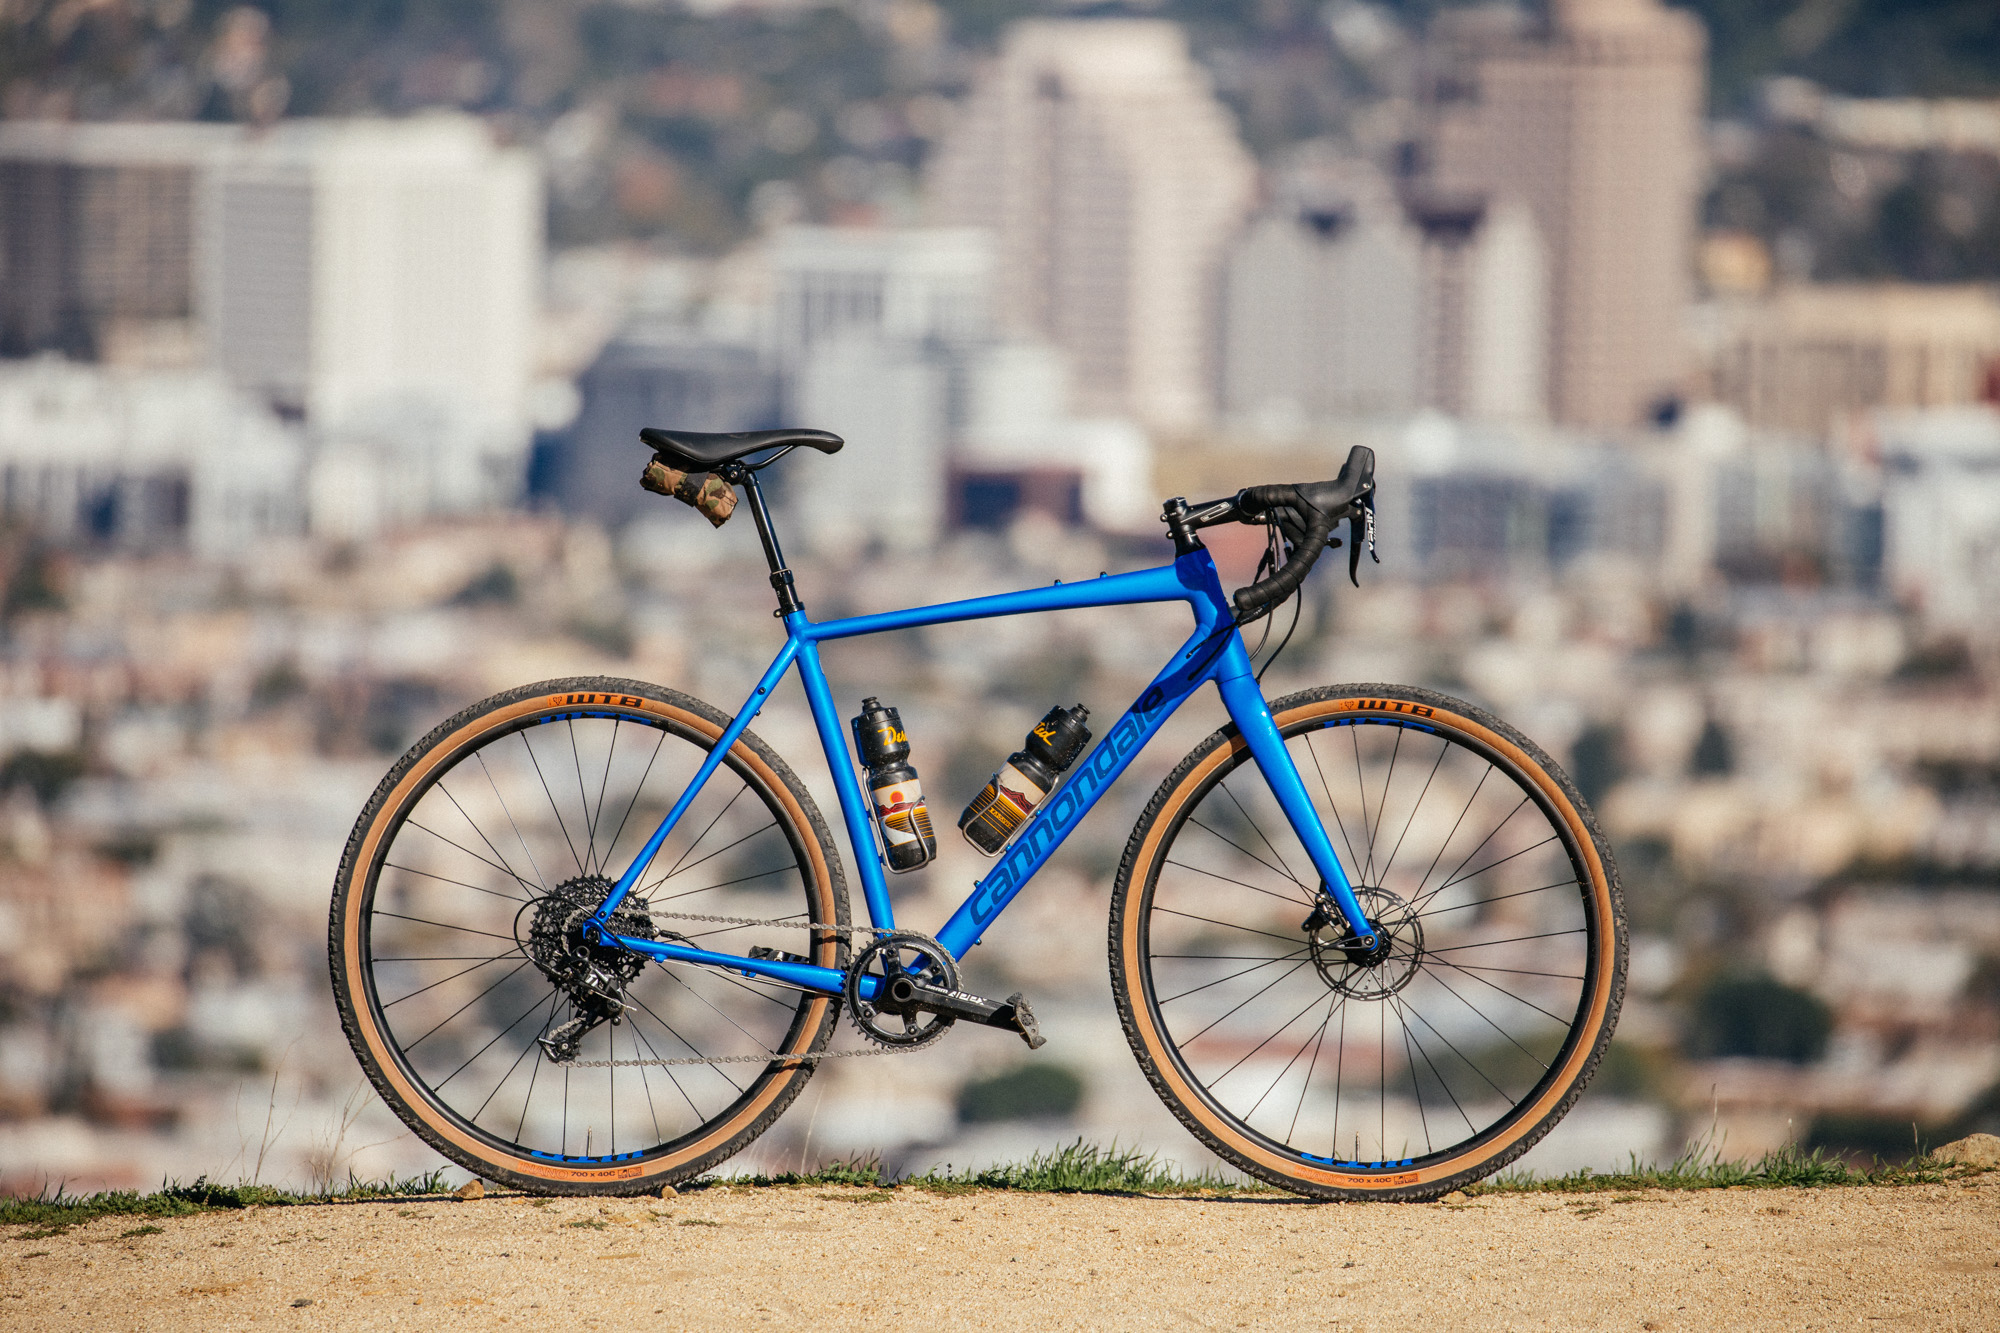 8ae937b8662 Capability and Affordability with the Cannondale Topstone All Road ...